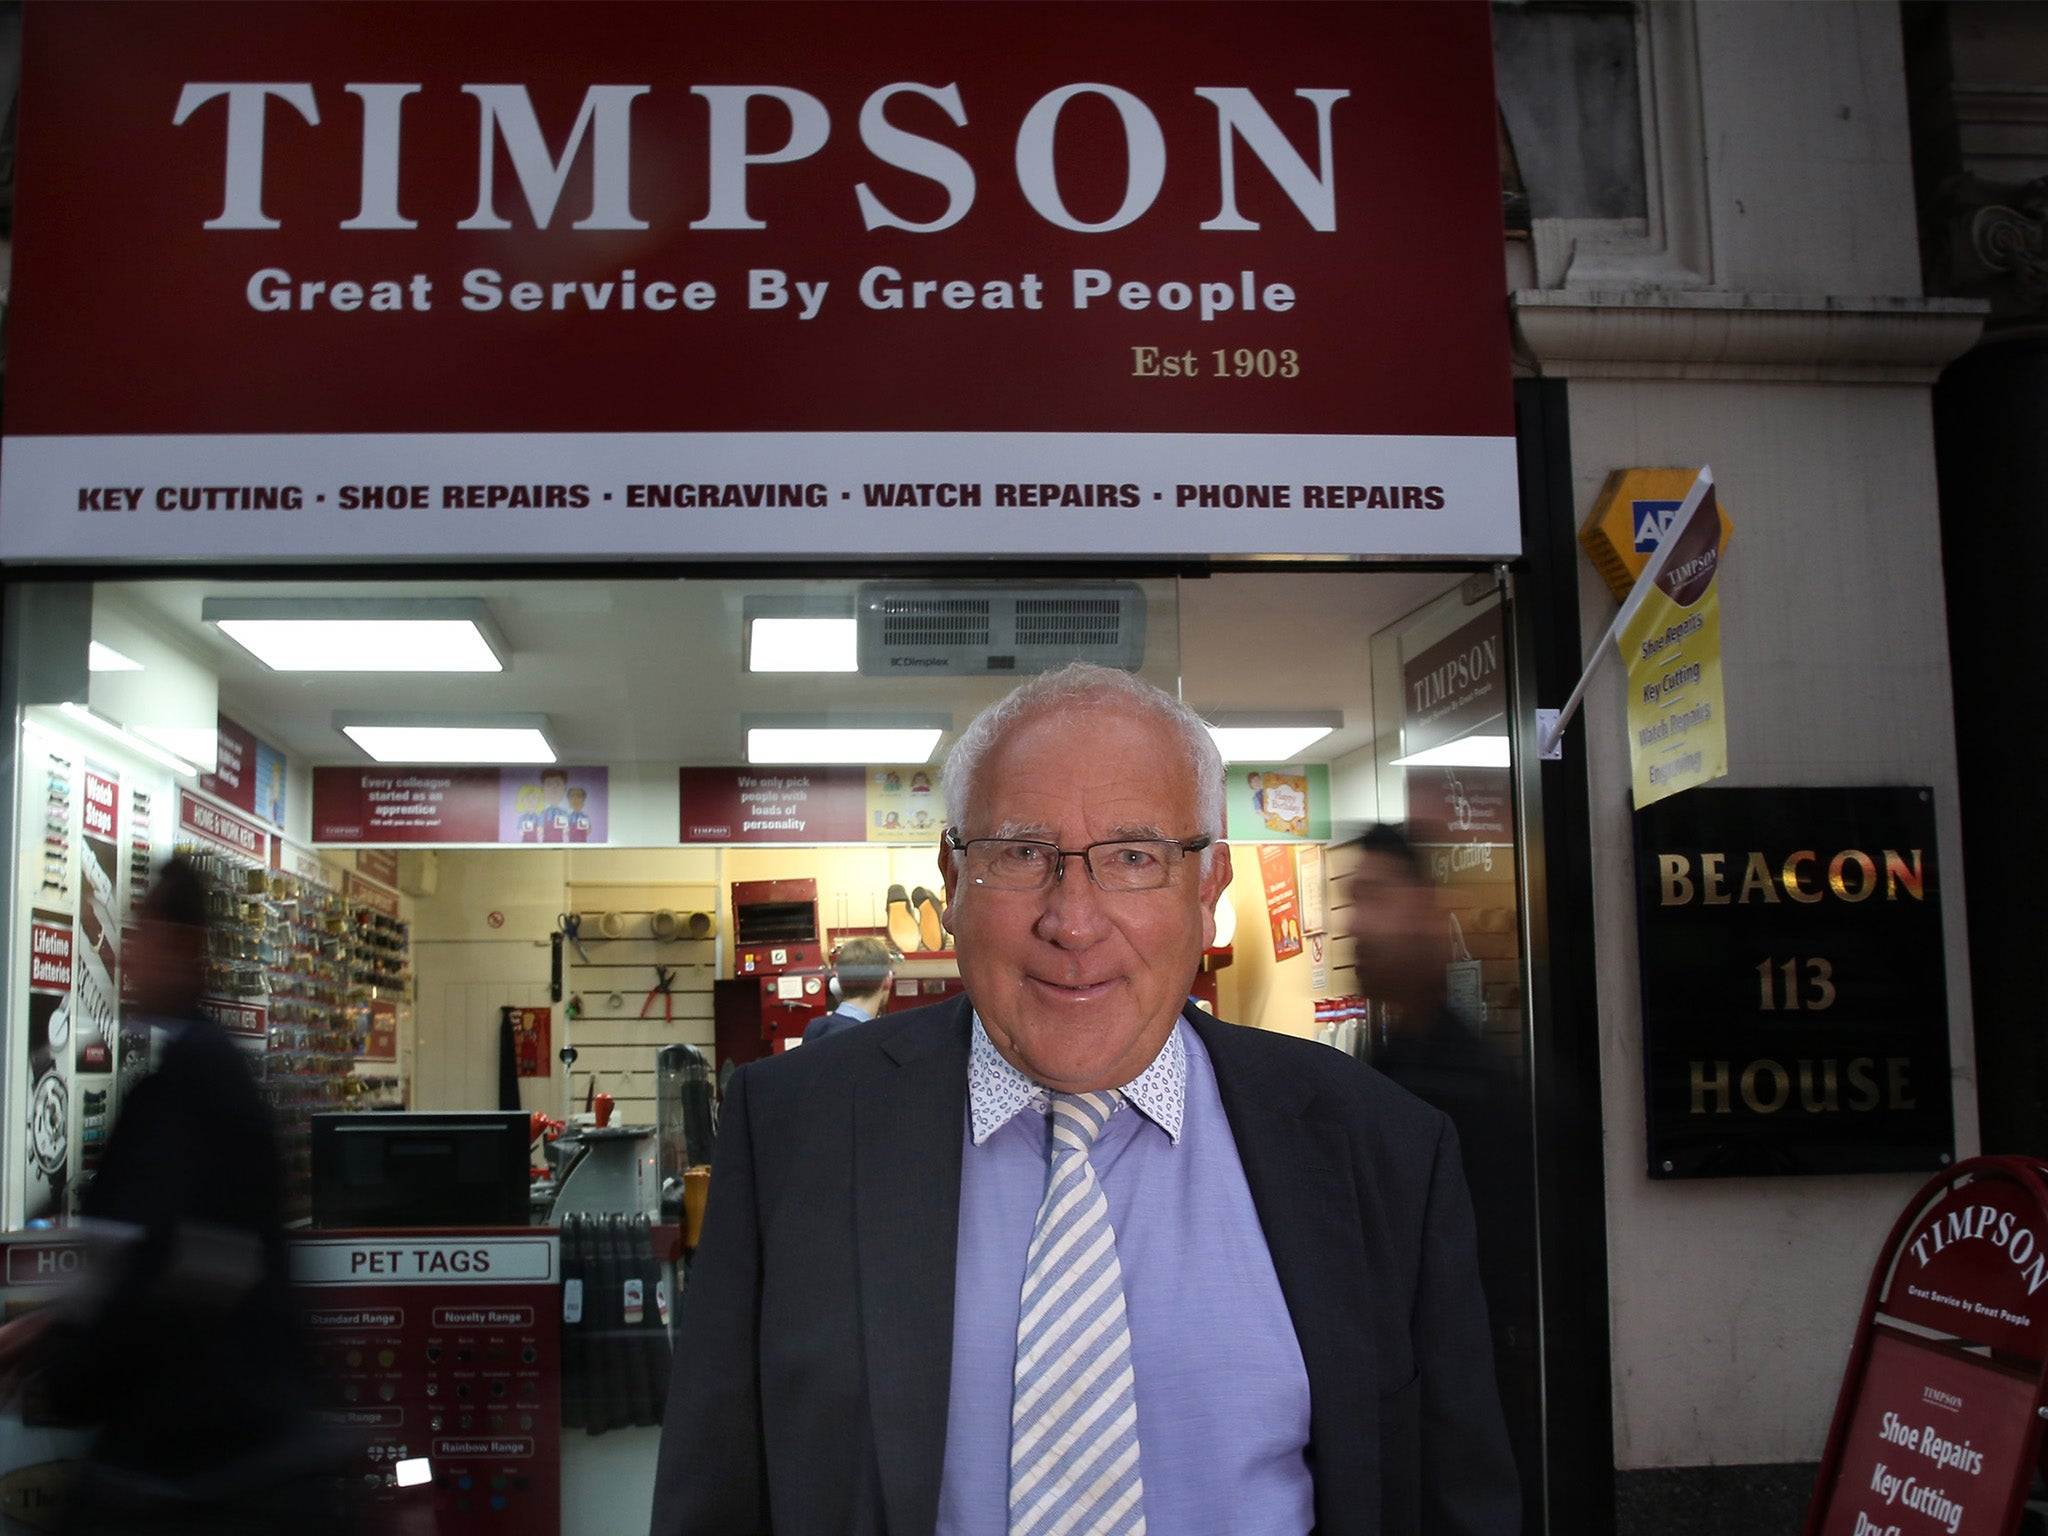 timpson sex personals Warenettier timpson is 53 dating websites, forgotten report to see a complete list of any and all sex offenses warenettier may have been convicted of and his.